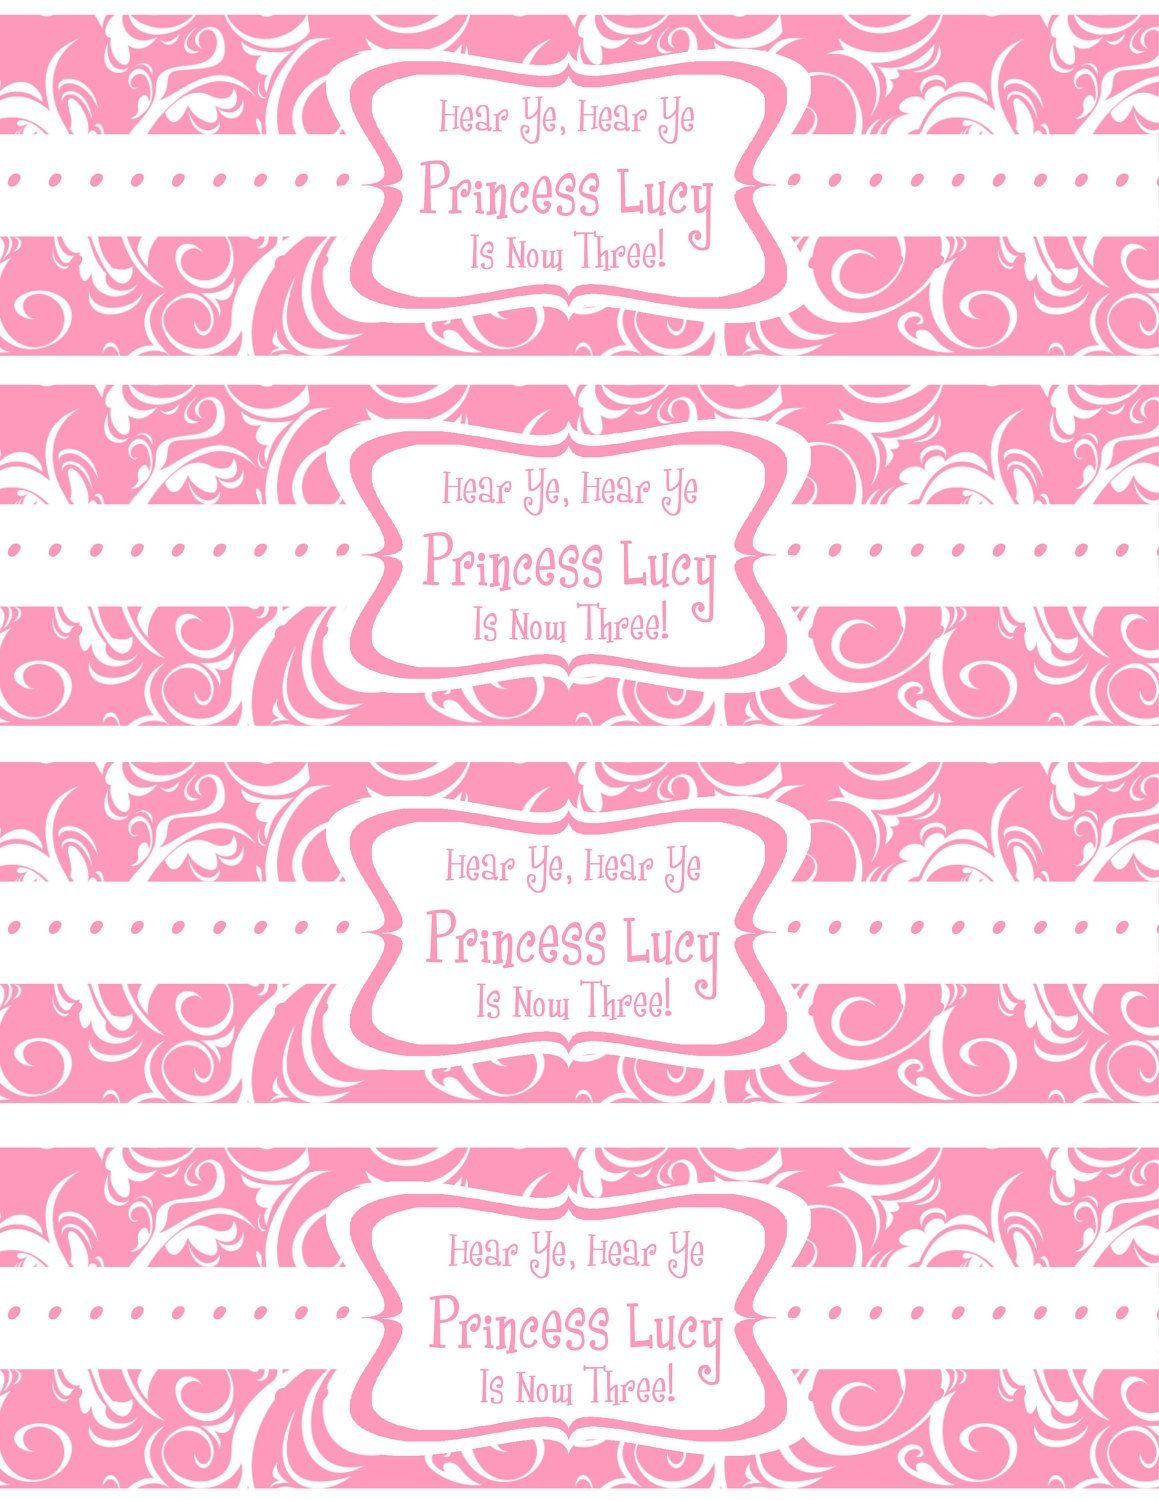 Free Printable Water Bottle Labels Template   Kreatief   Printable - Free Printable Water Bottle Labels For Baby Shower